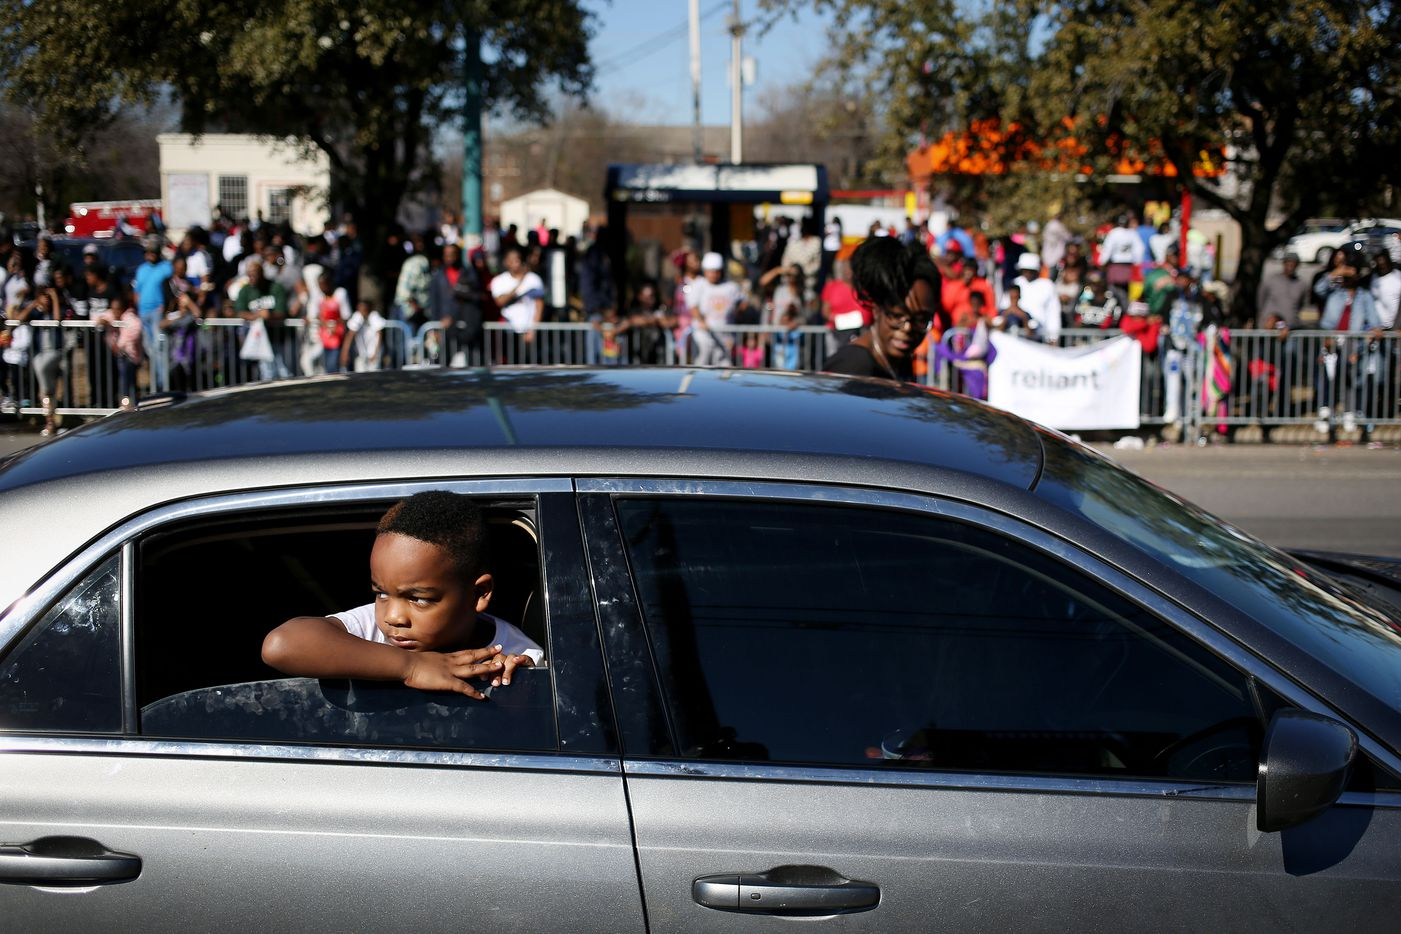 King Walton, 6, watches from a car while participating in the parade.